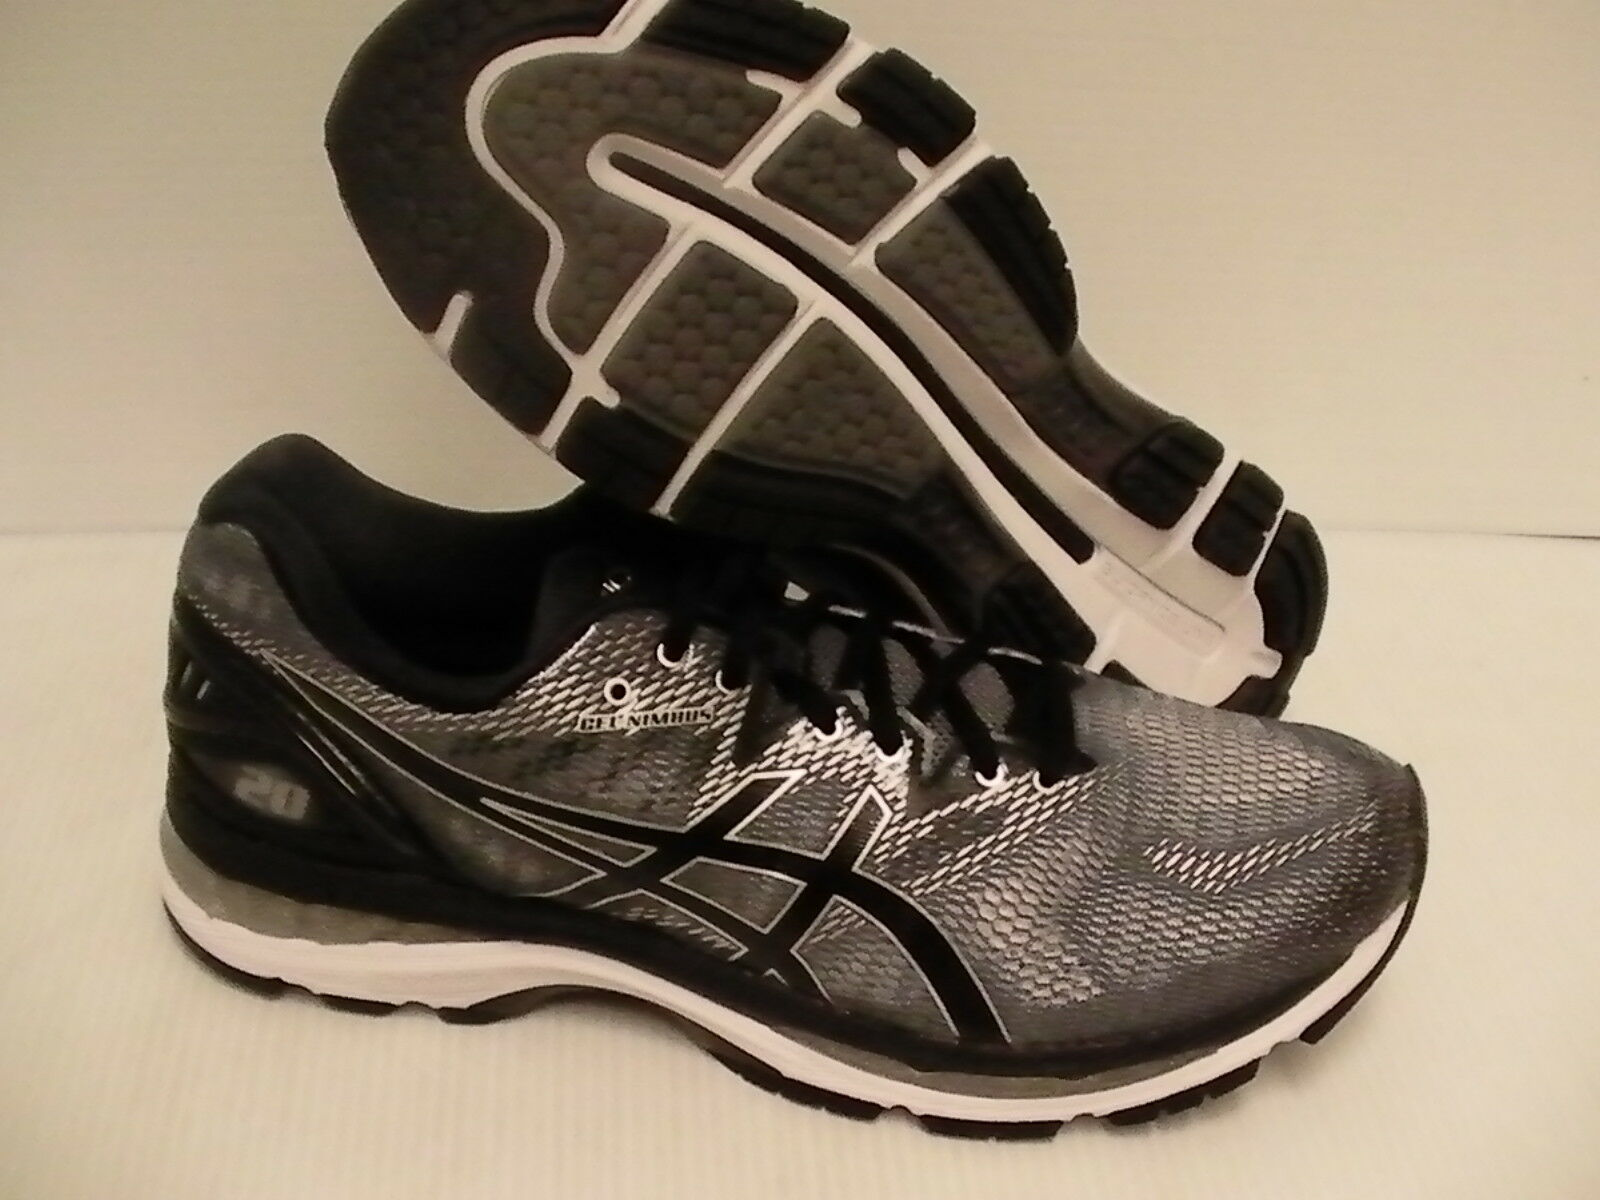 Asics men's running shoes gel nimbus 20 carbon black silver size 9.5 us